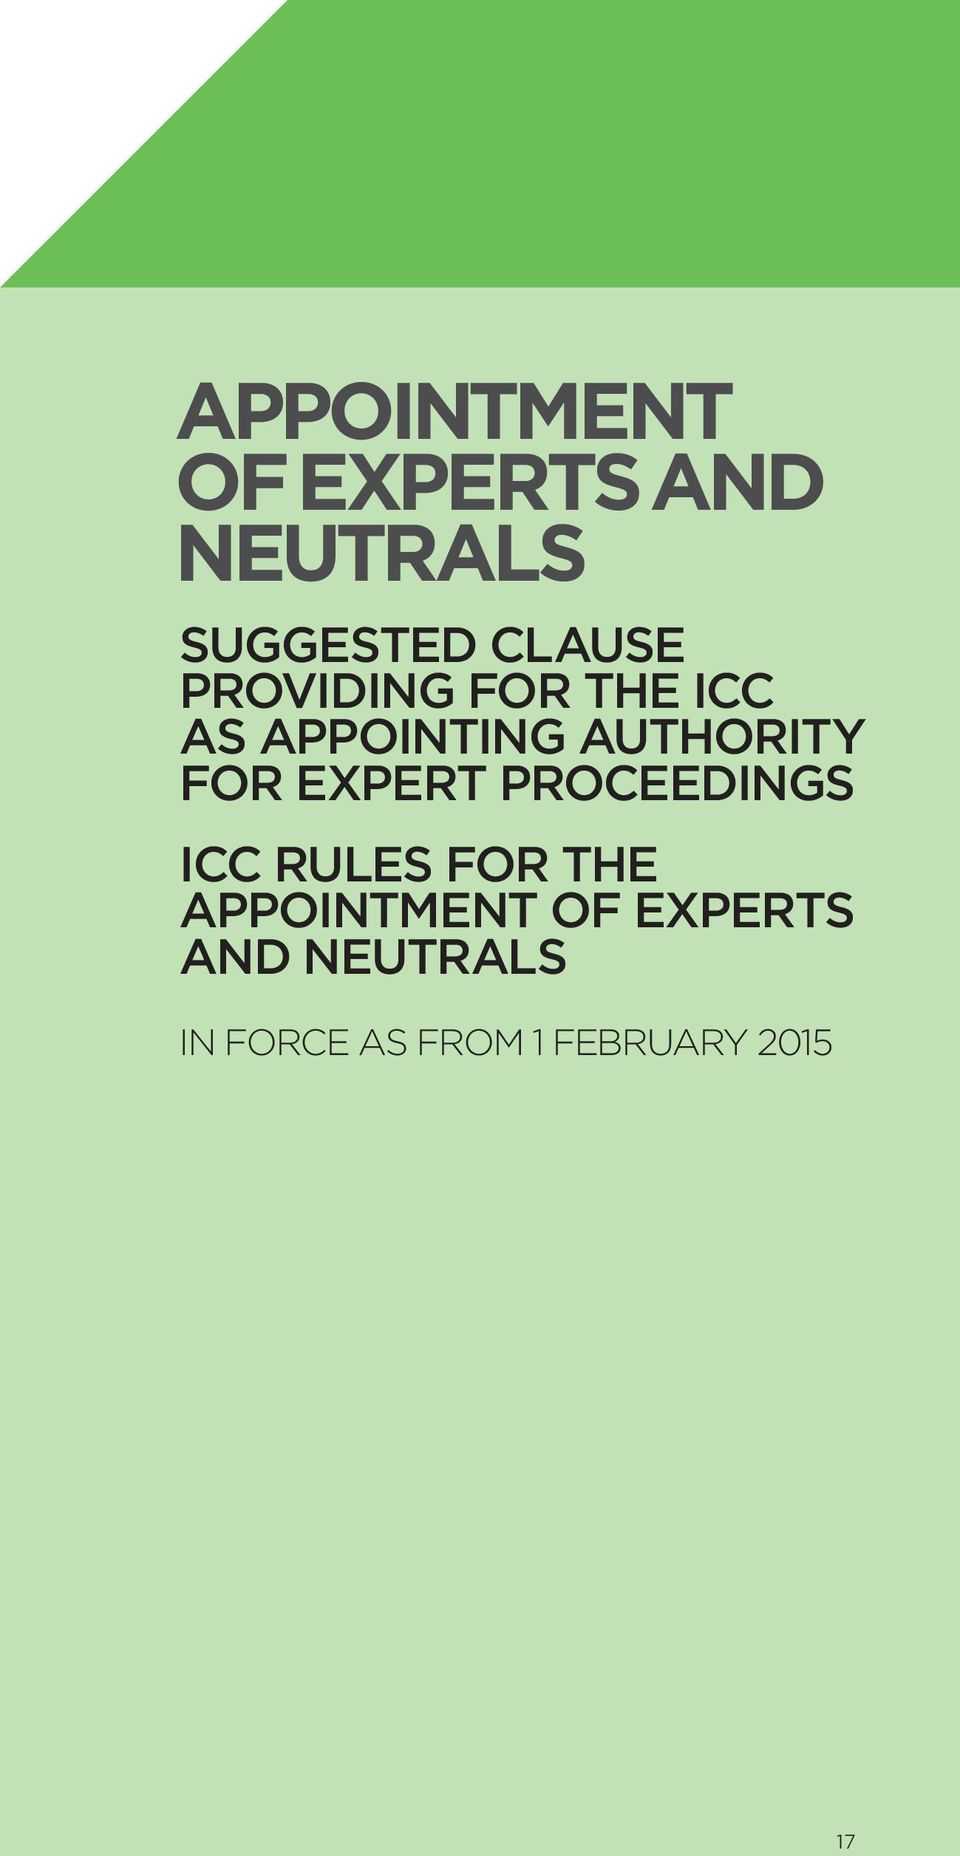 expert proceedings icc rules for the appointment of